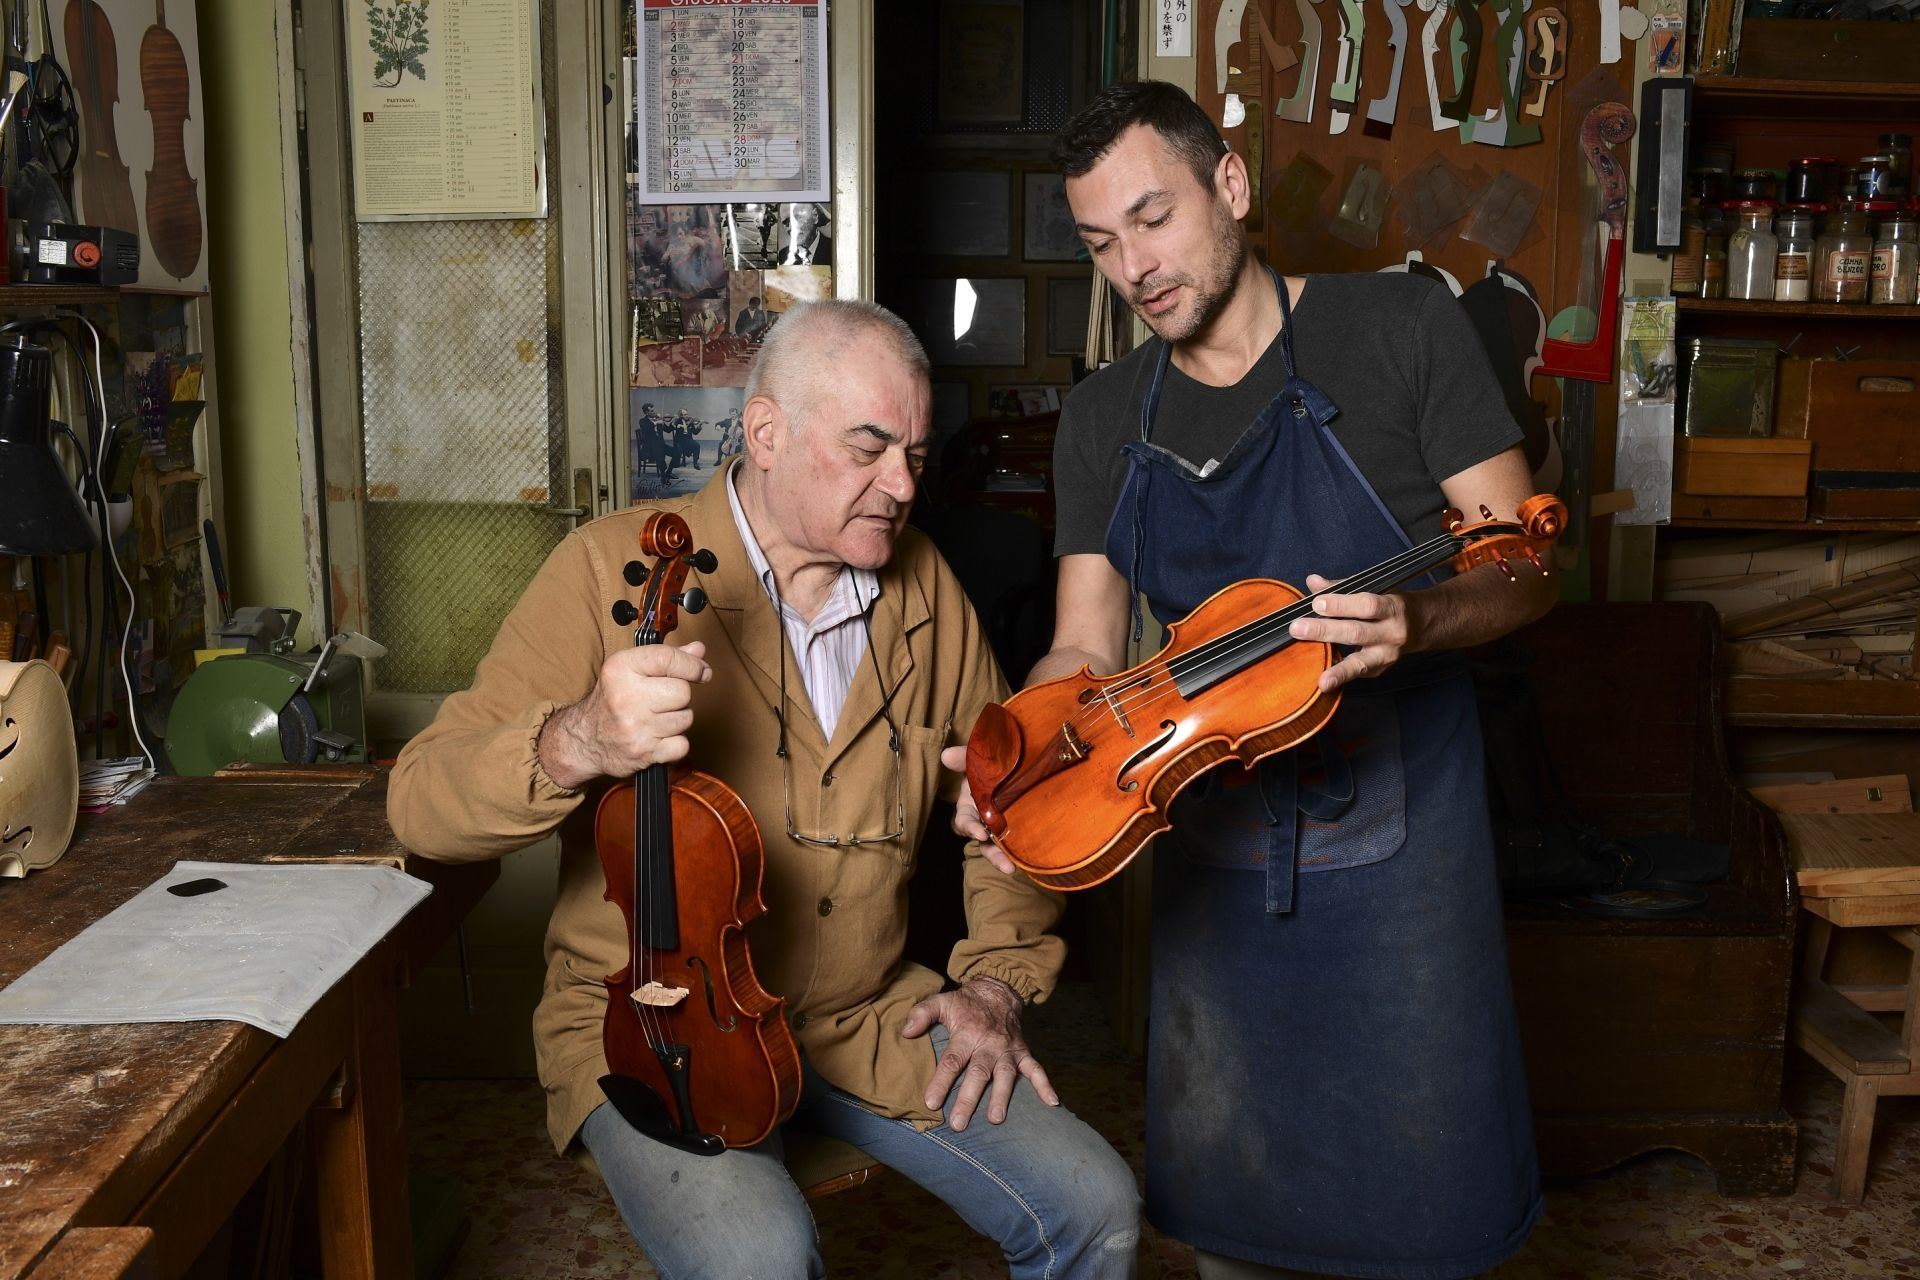 Cremona's current oldest luthier, Hungary's Stefano Conia (74) and his son Stefano Jr (47) are pictured with a violin at their workshop in Cremona on June 9, 2020. - Stradivarius' homeland, the Italian city of Cremona, has become a laboratory for luthiers from all over the world : working in the tradition of the great masters, they try to resist despite a shrinking market and fierce Chinese competition. (Photo by Miguel MEDINA / AFP)